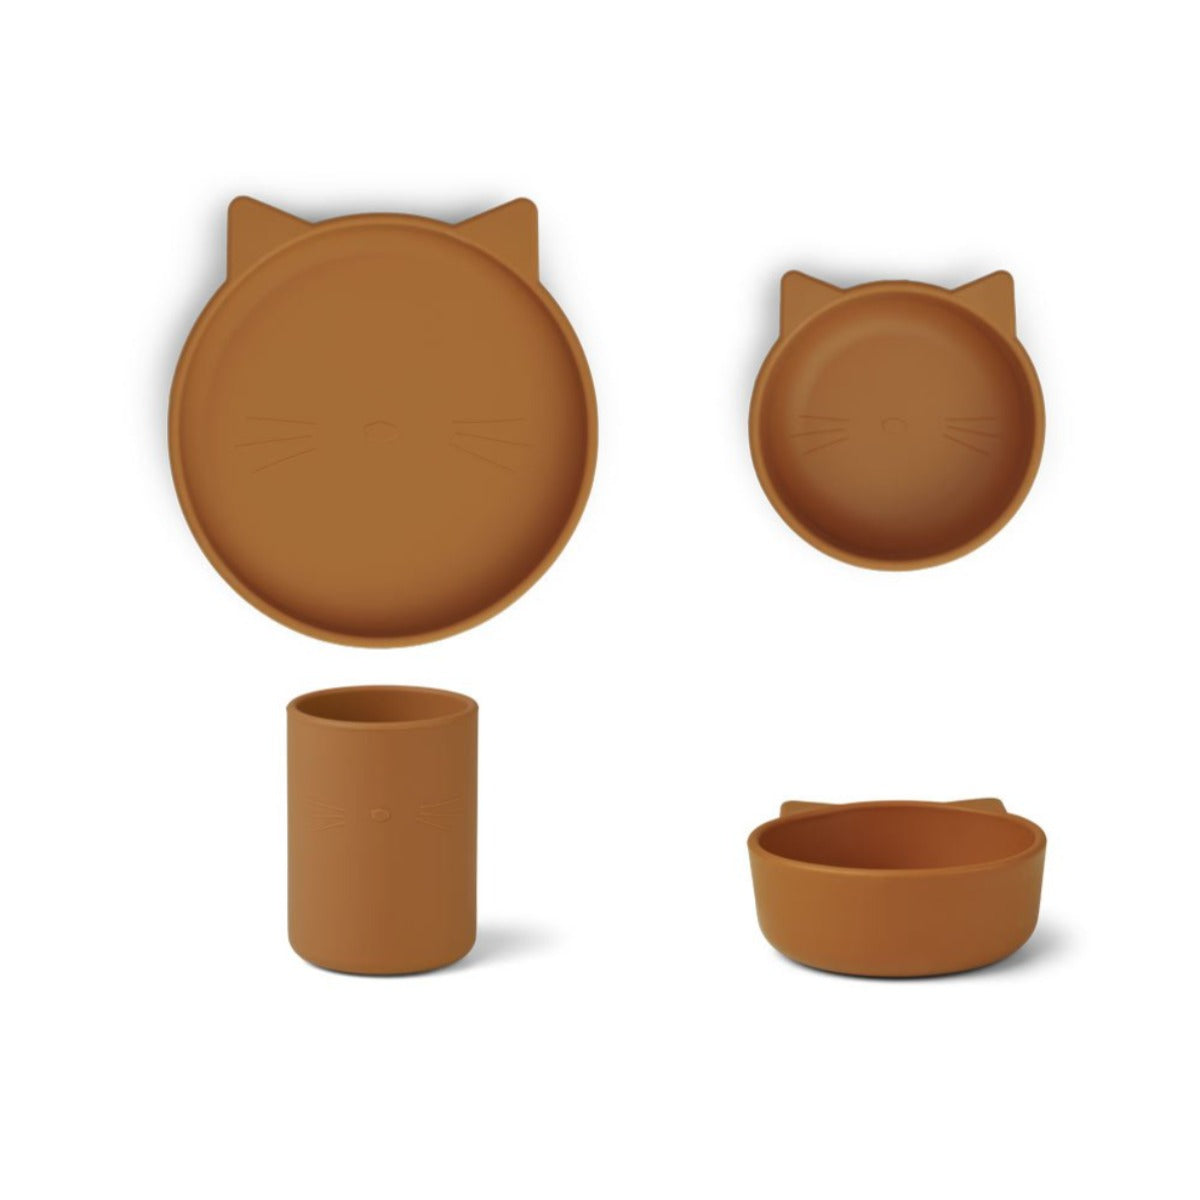 Liewood cyrus silicone junior set, cat mustard